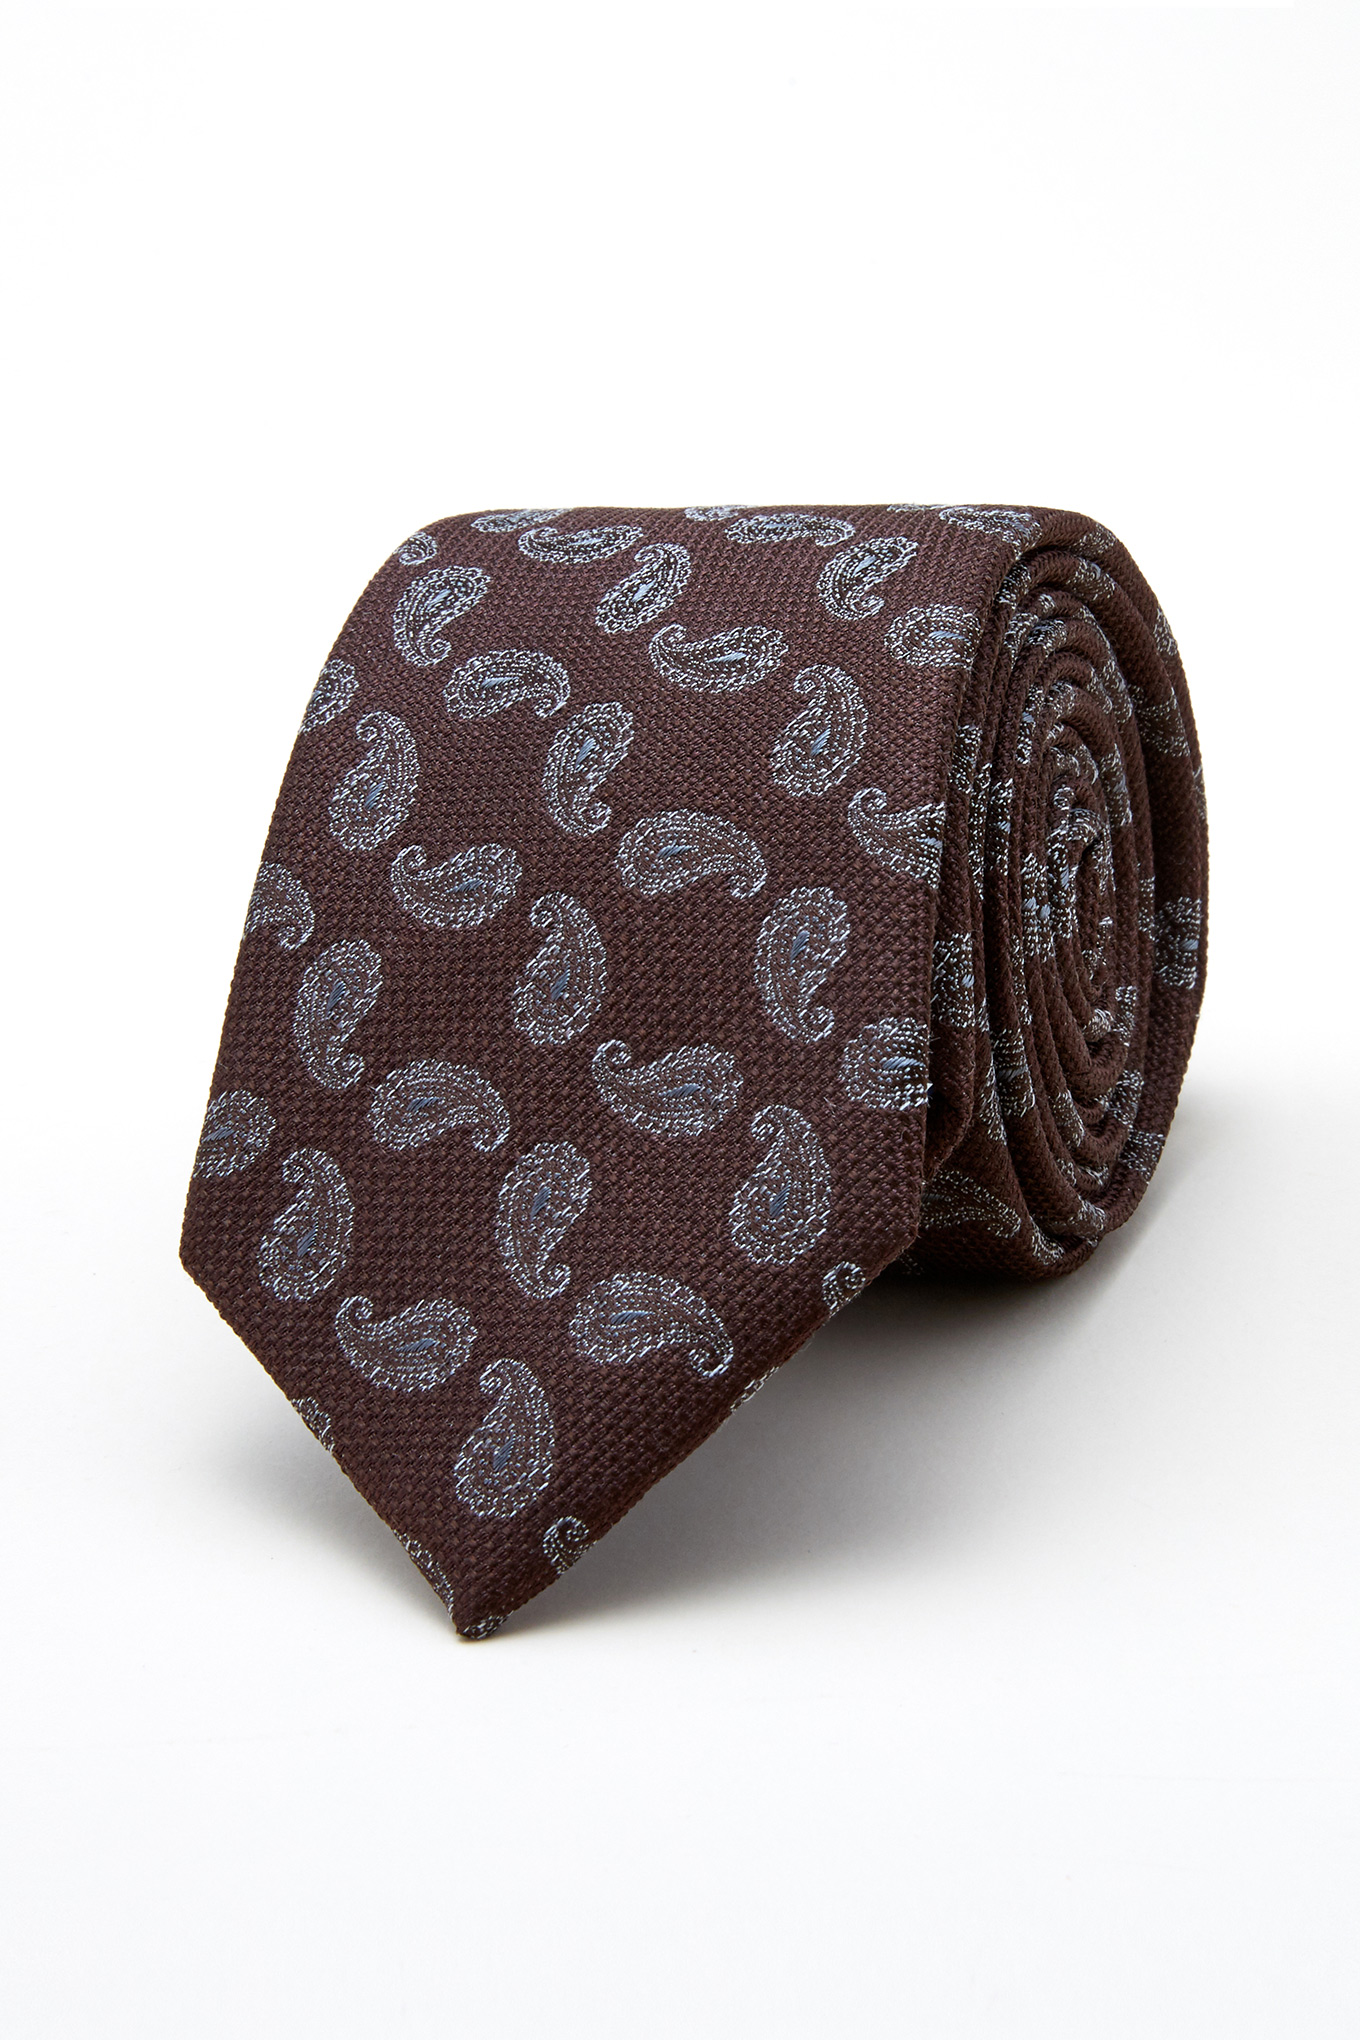 Tie Chocolate Classic Man